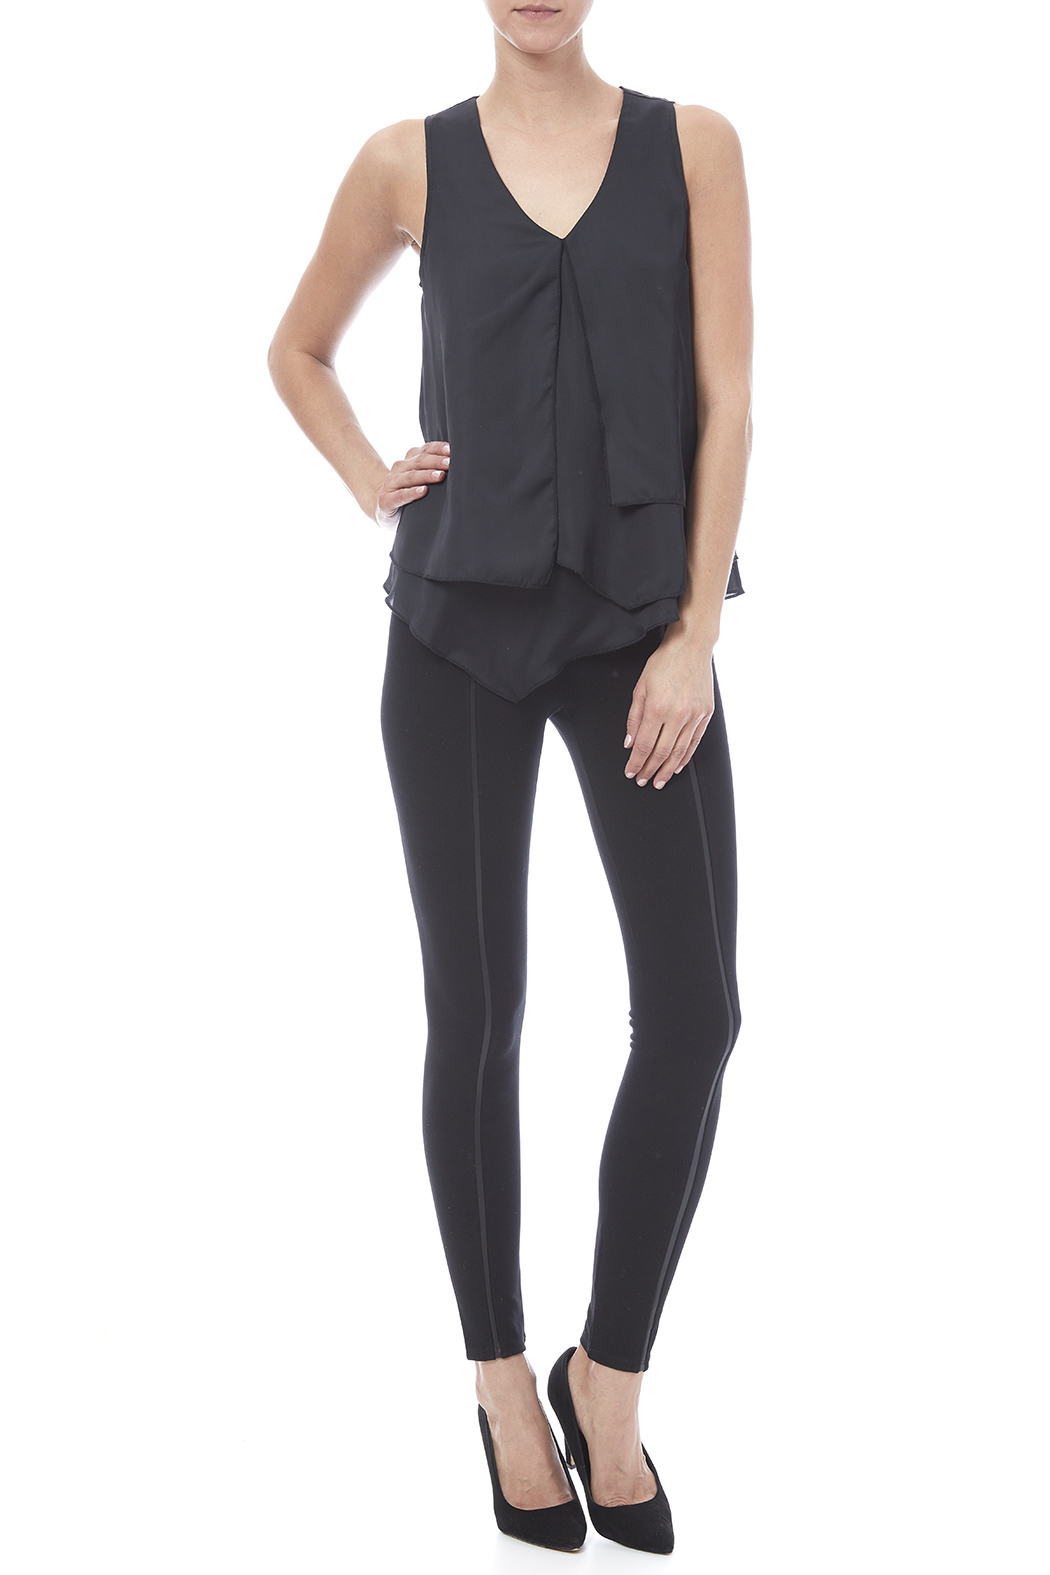 HYFVE Layered Look Blouse - Front Full Image